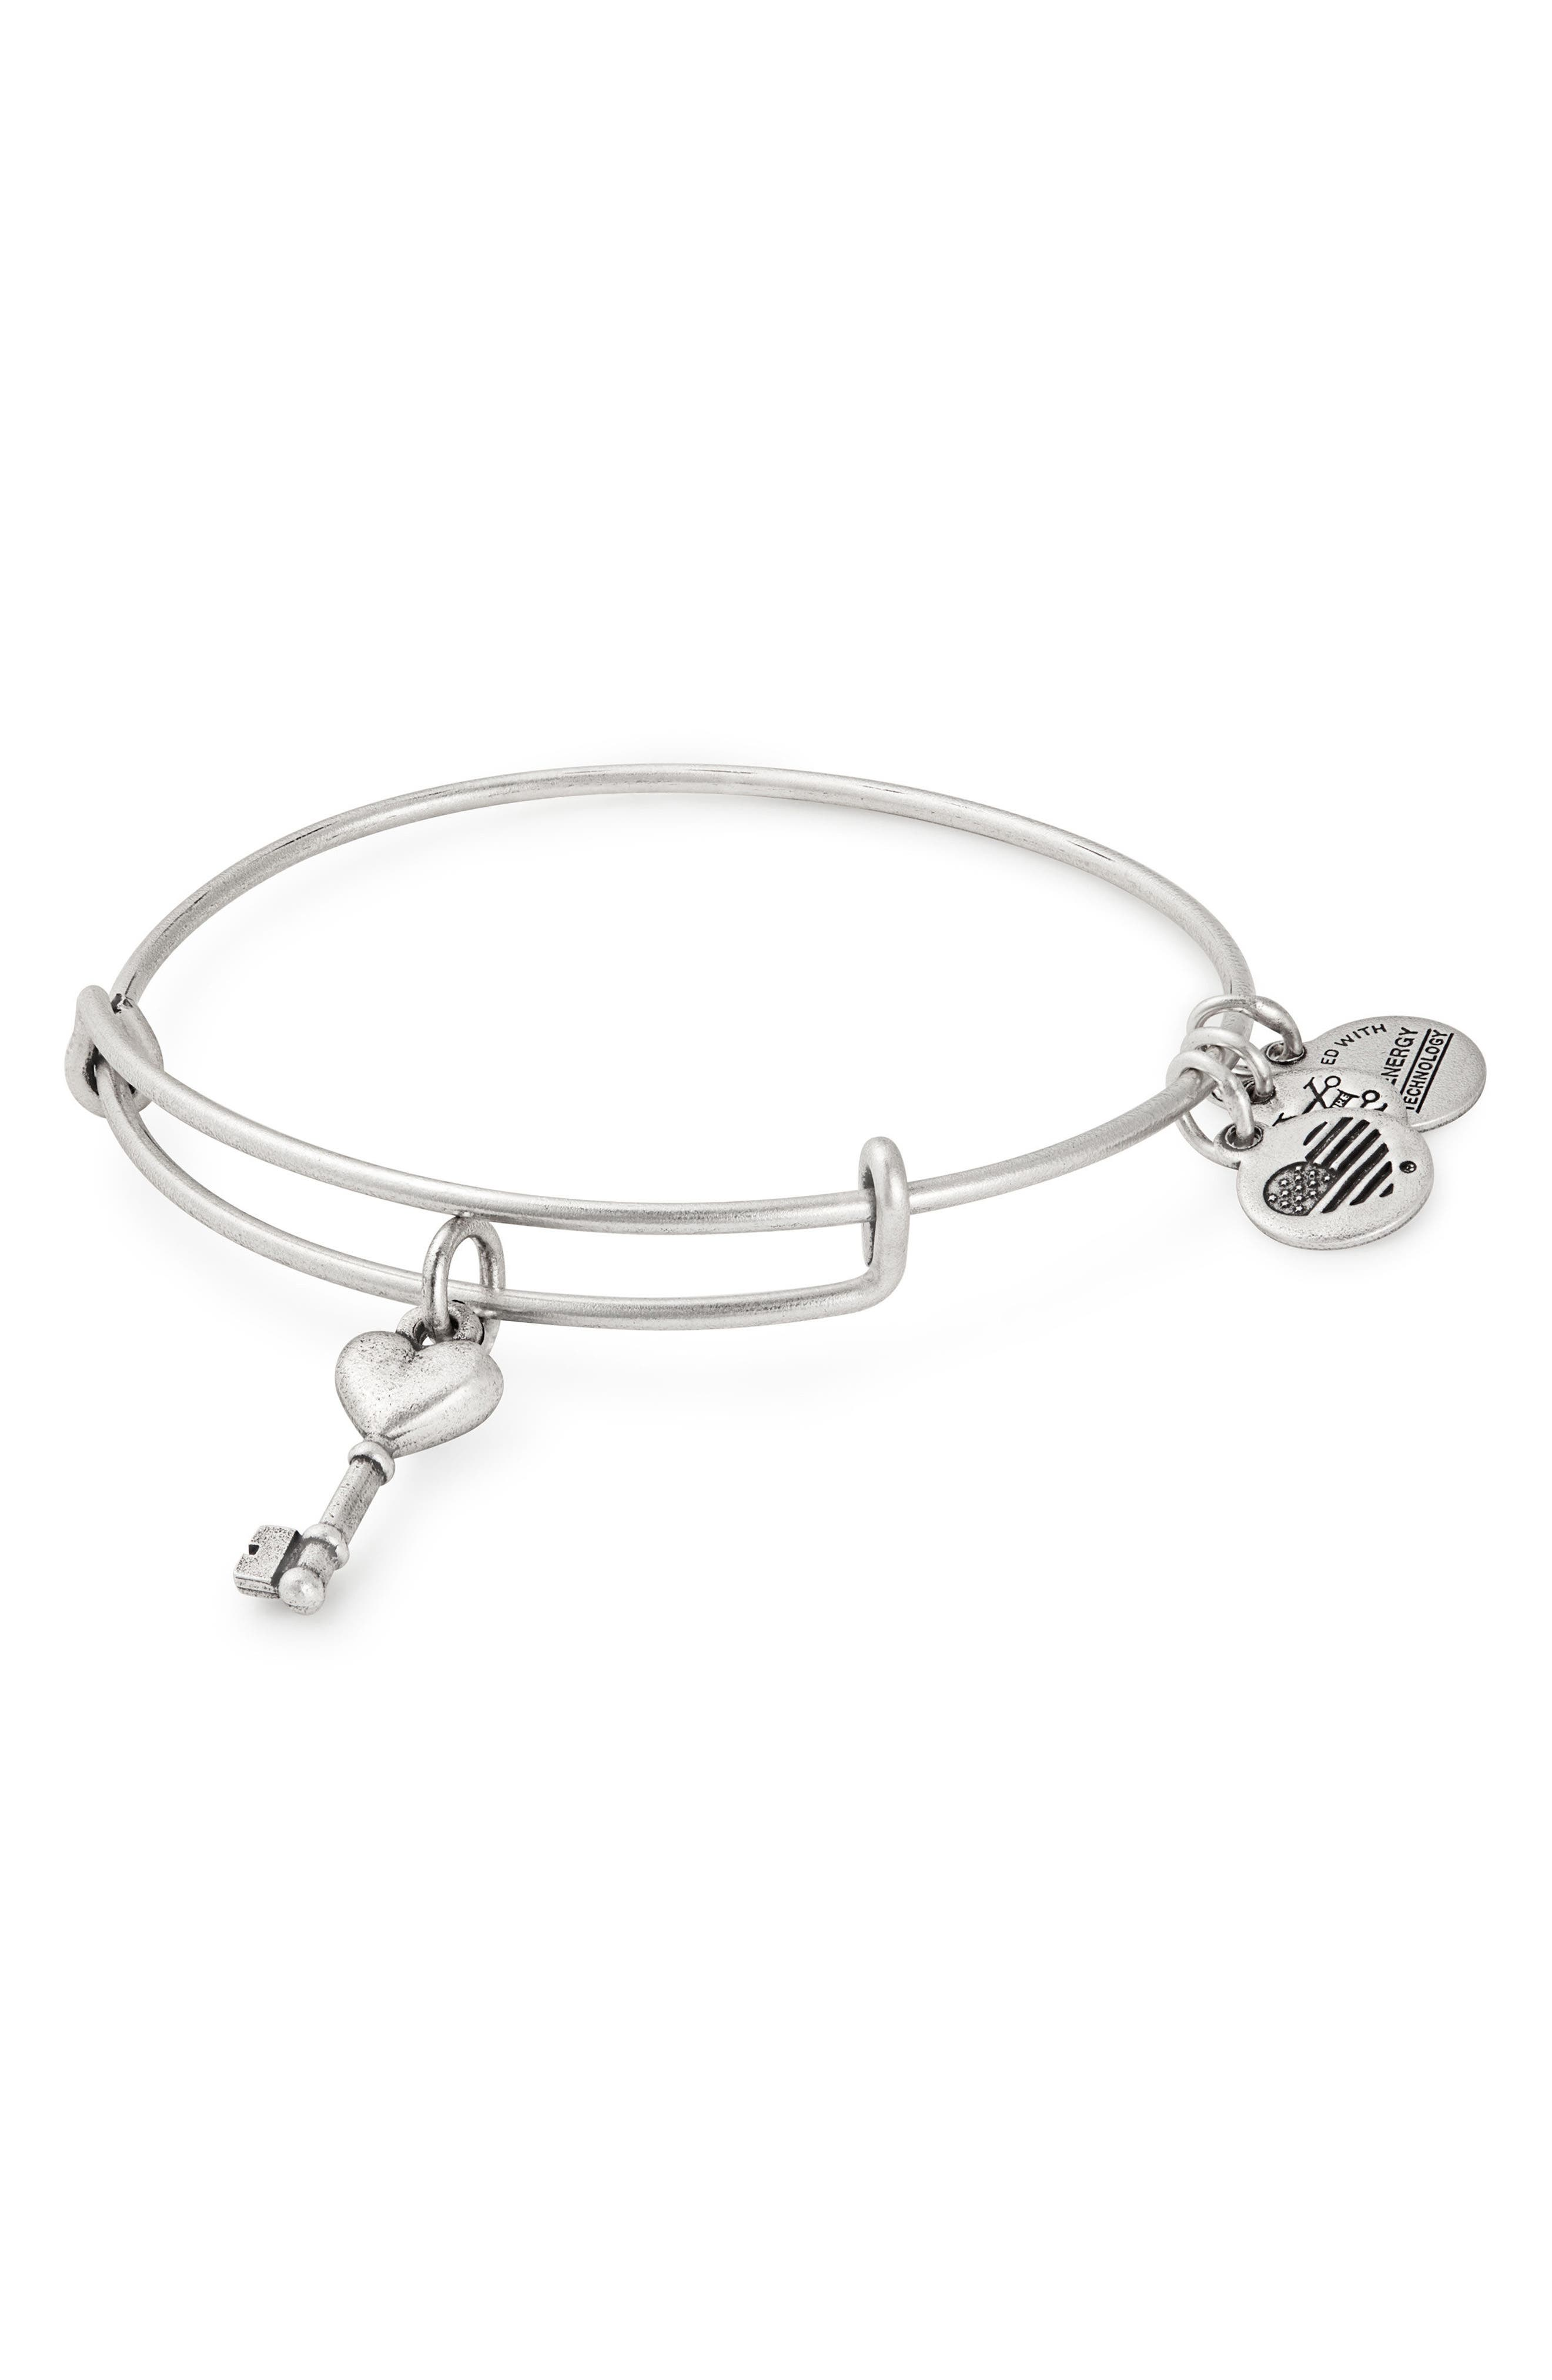 Key to Love Adjustable Wire Bangle,                         Main,                         color, 040